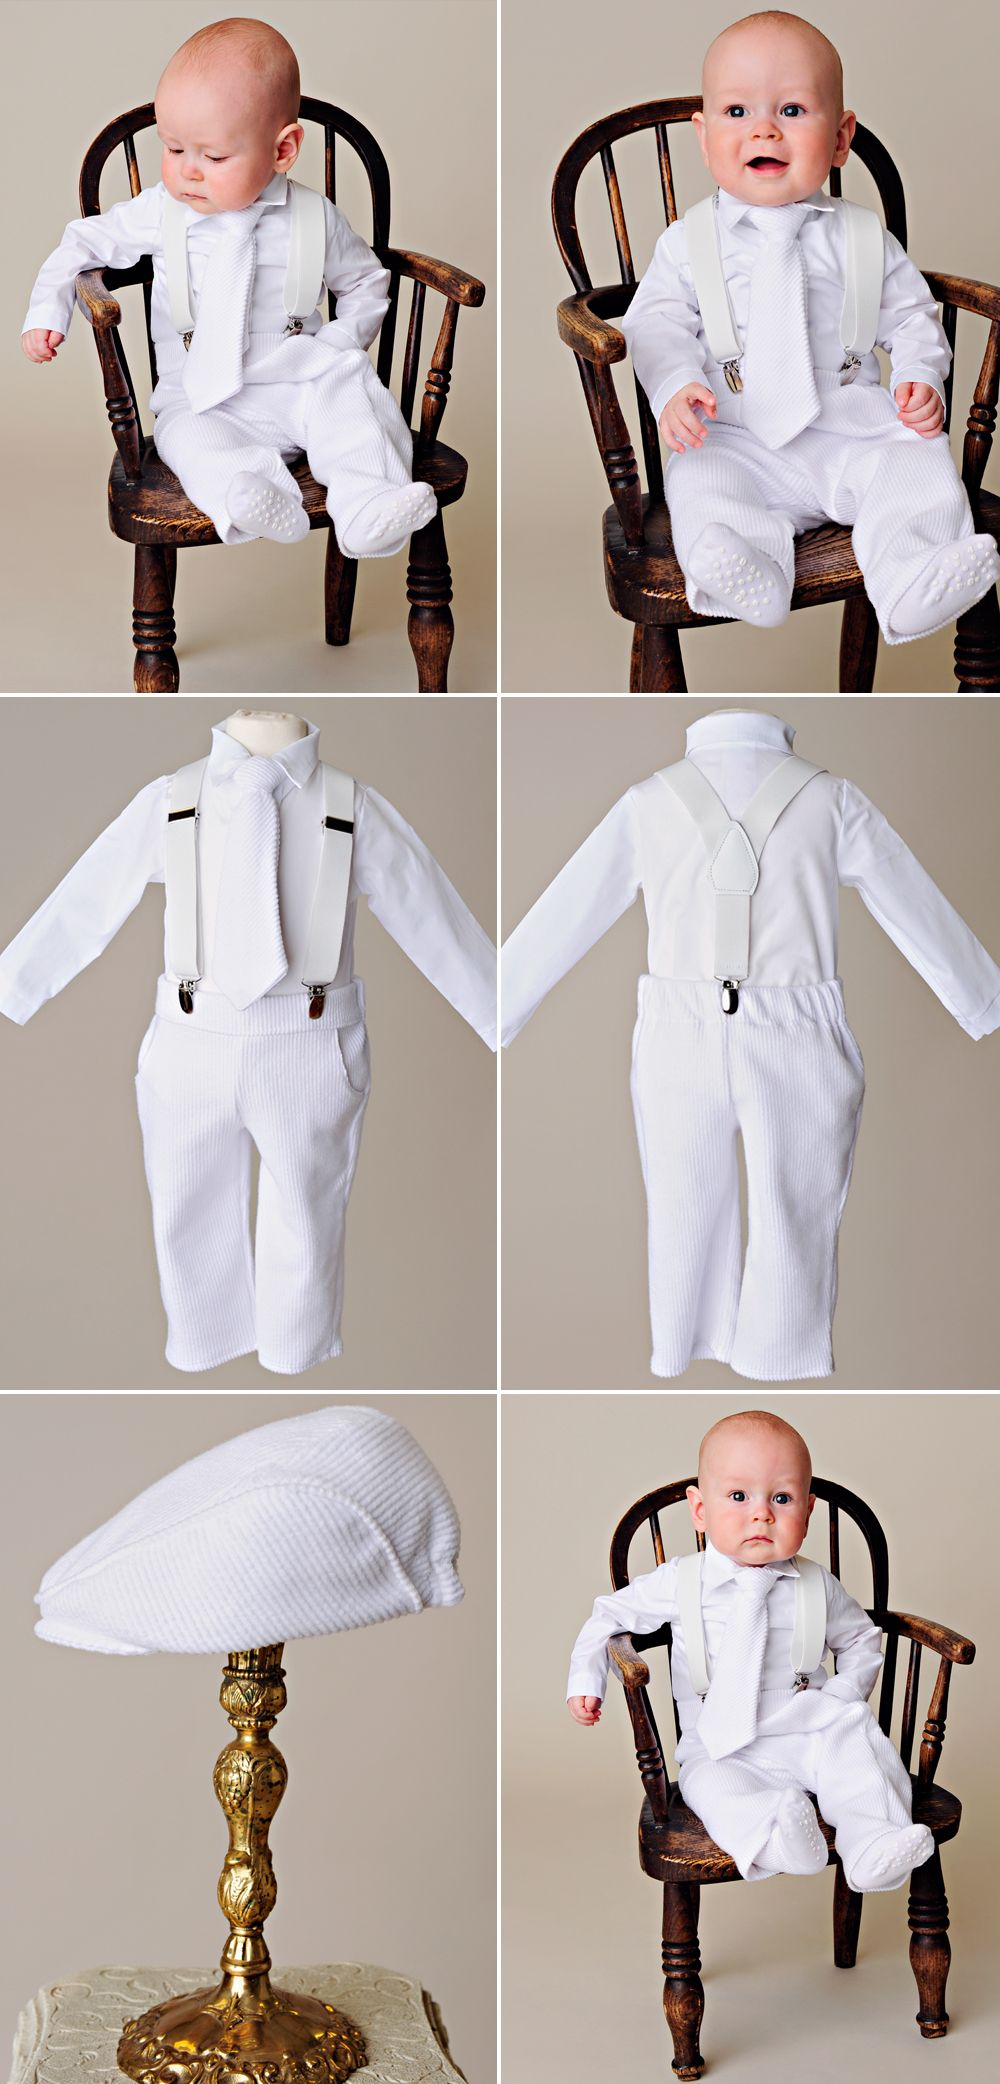 deb6cff19 Our newest suspender suit, the Payton, has a soft textured fabric and a  handsome charm.